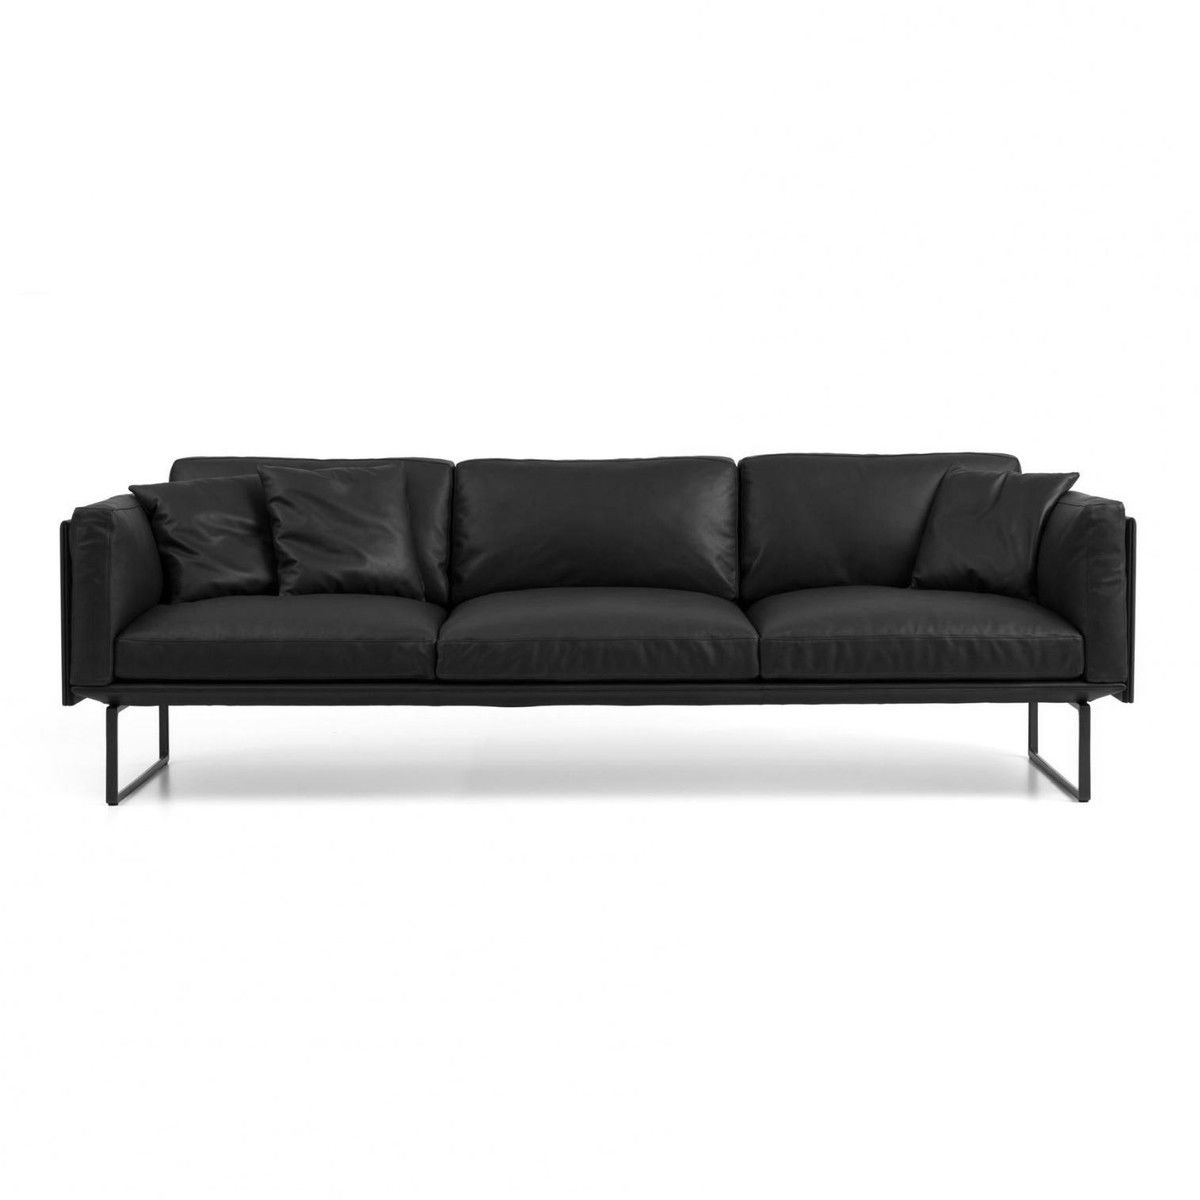 Piero lissoni 3 sitzer ledersofa cassina ambientedirect com